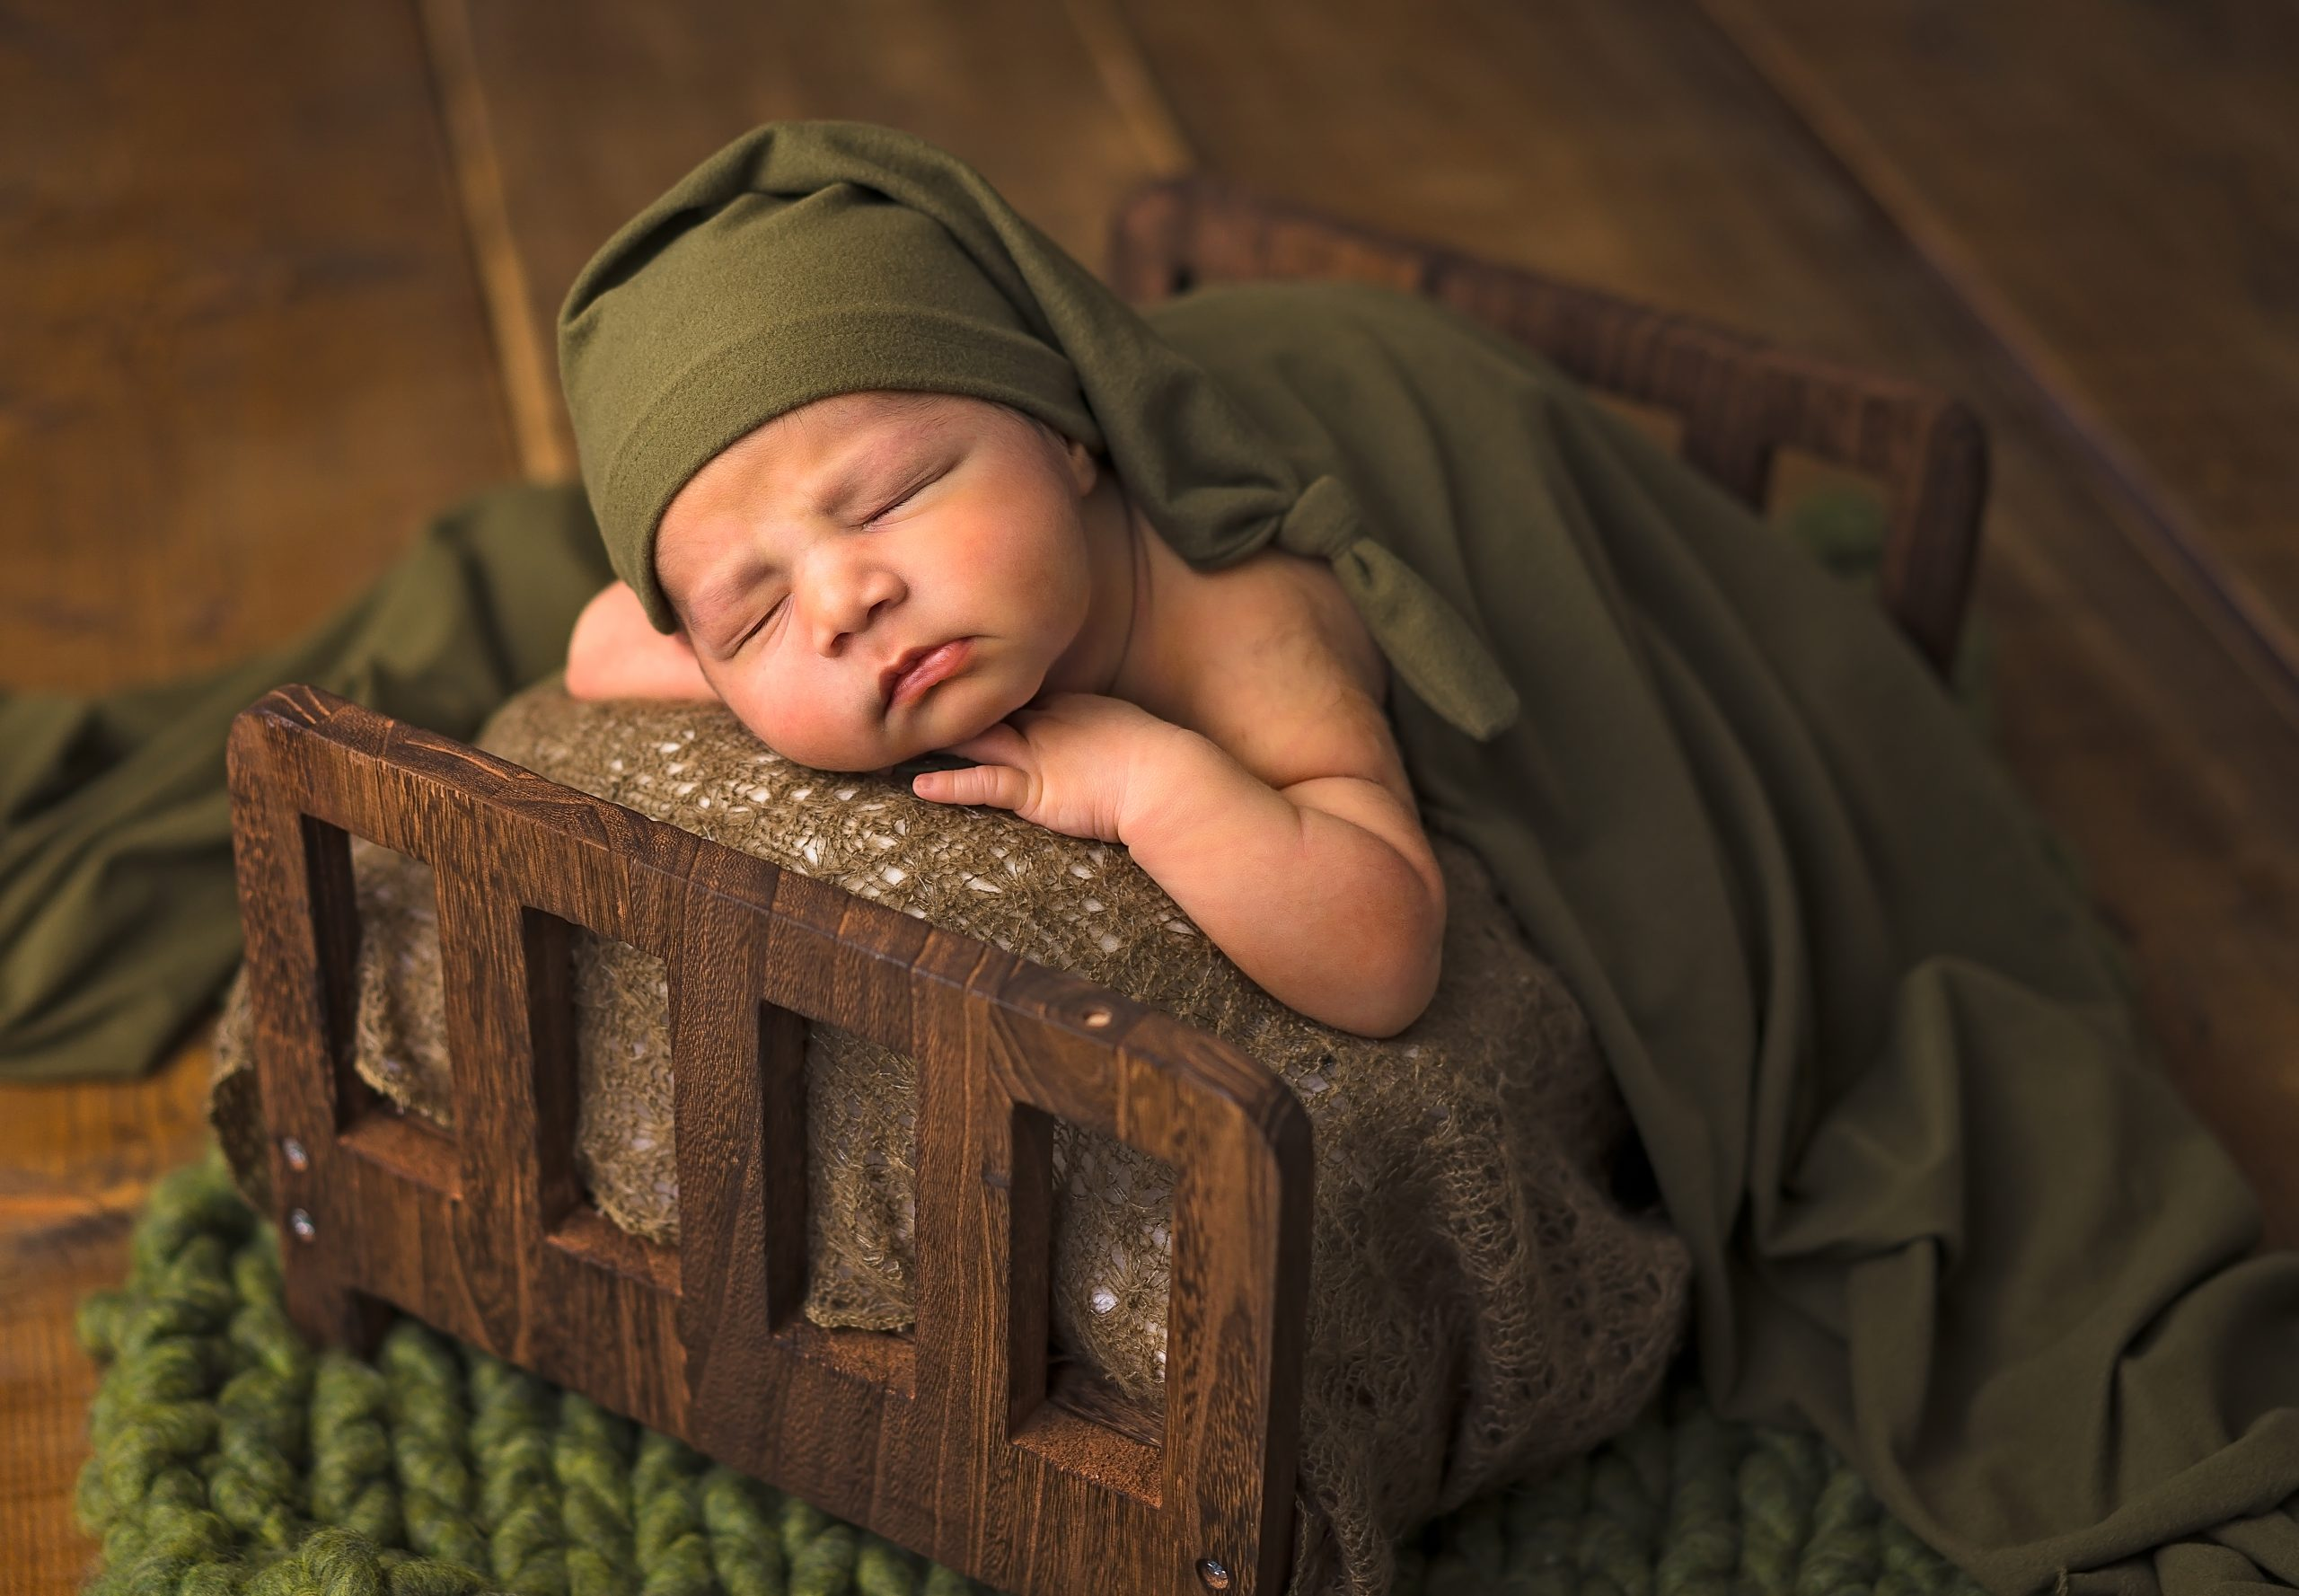 Newborn Baby Sleeping on a Bed with Green Sleeping Cap